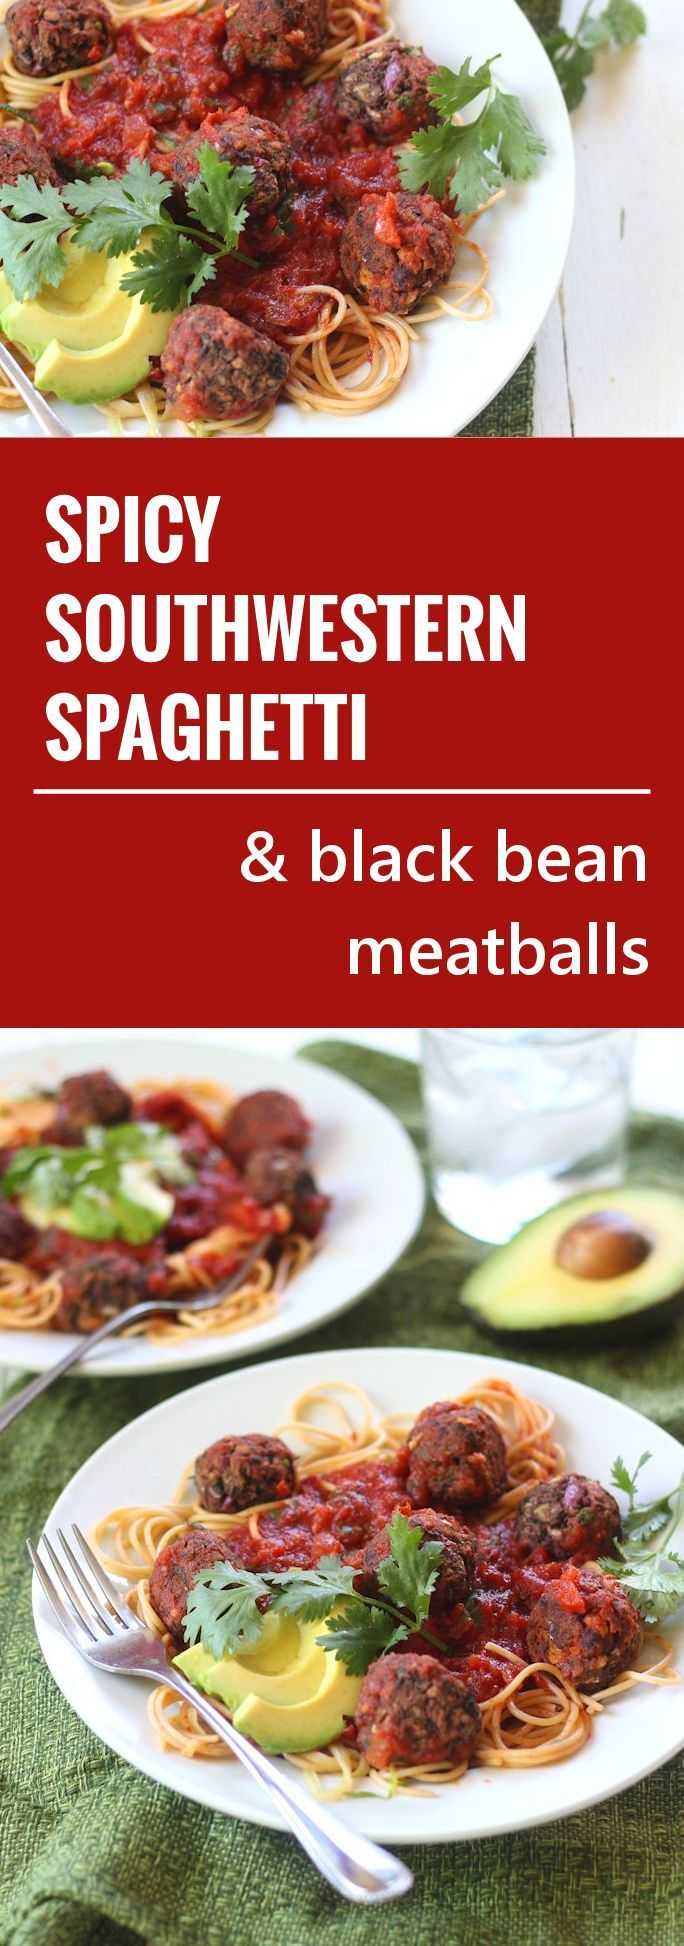 Noodles are dressed in spicy tomato sauce and served with avocado and ...